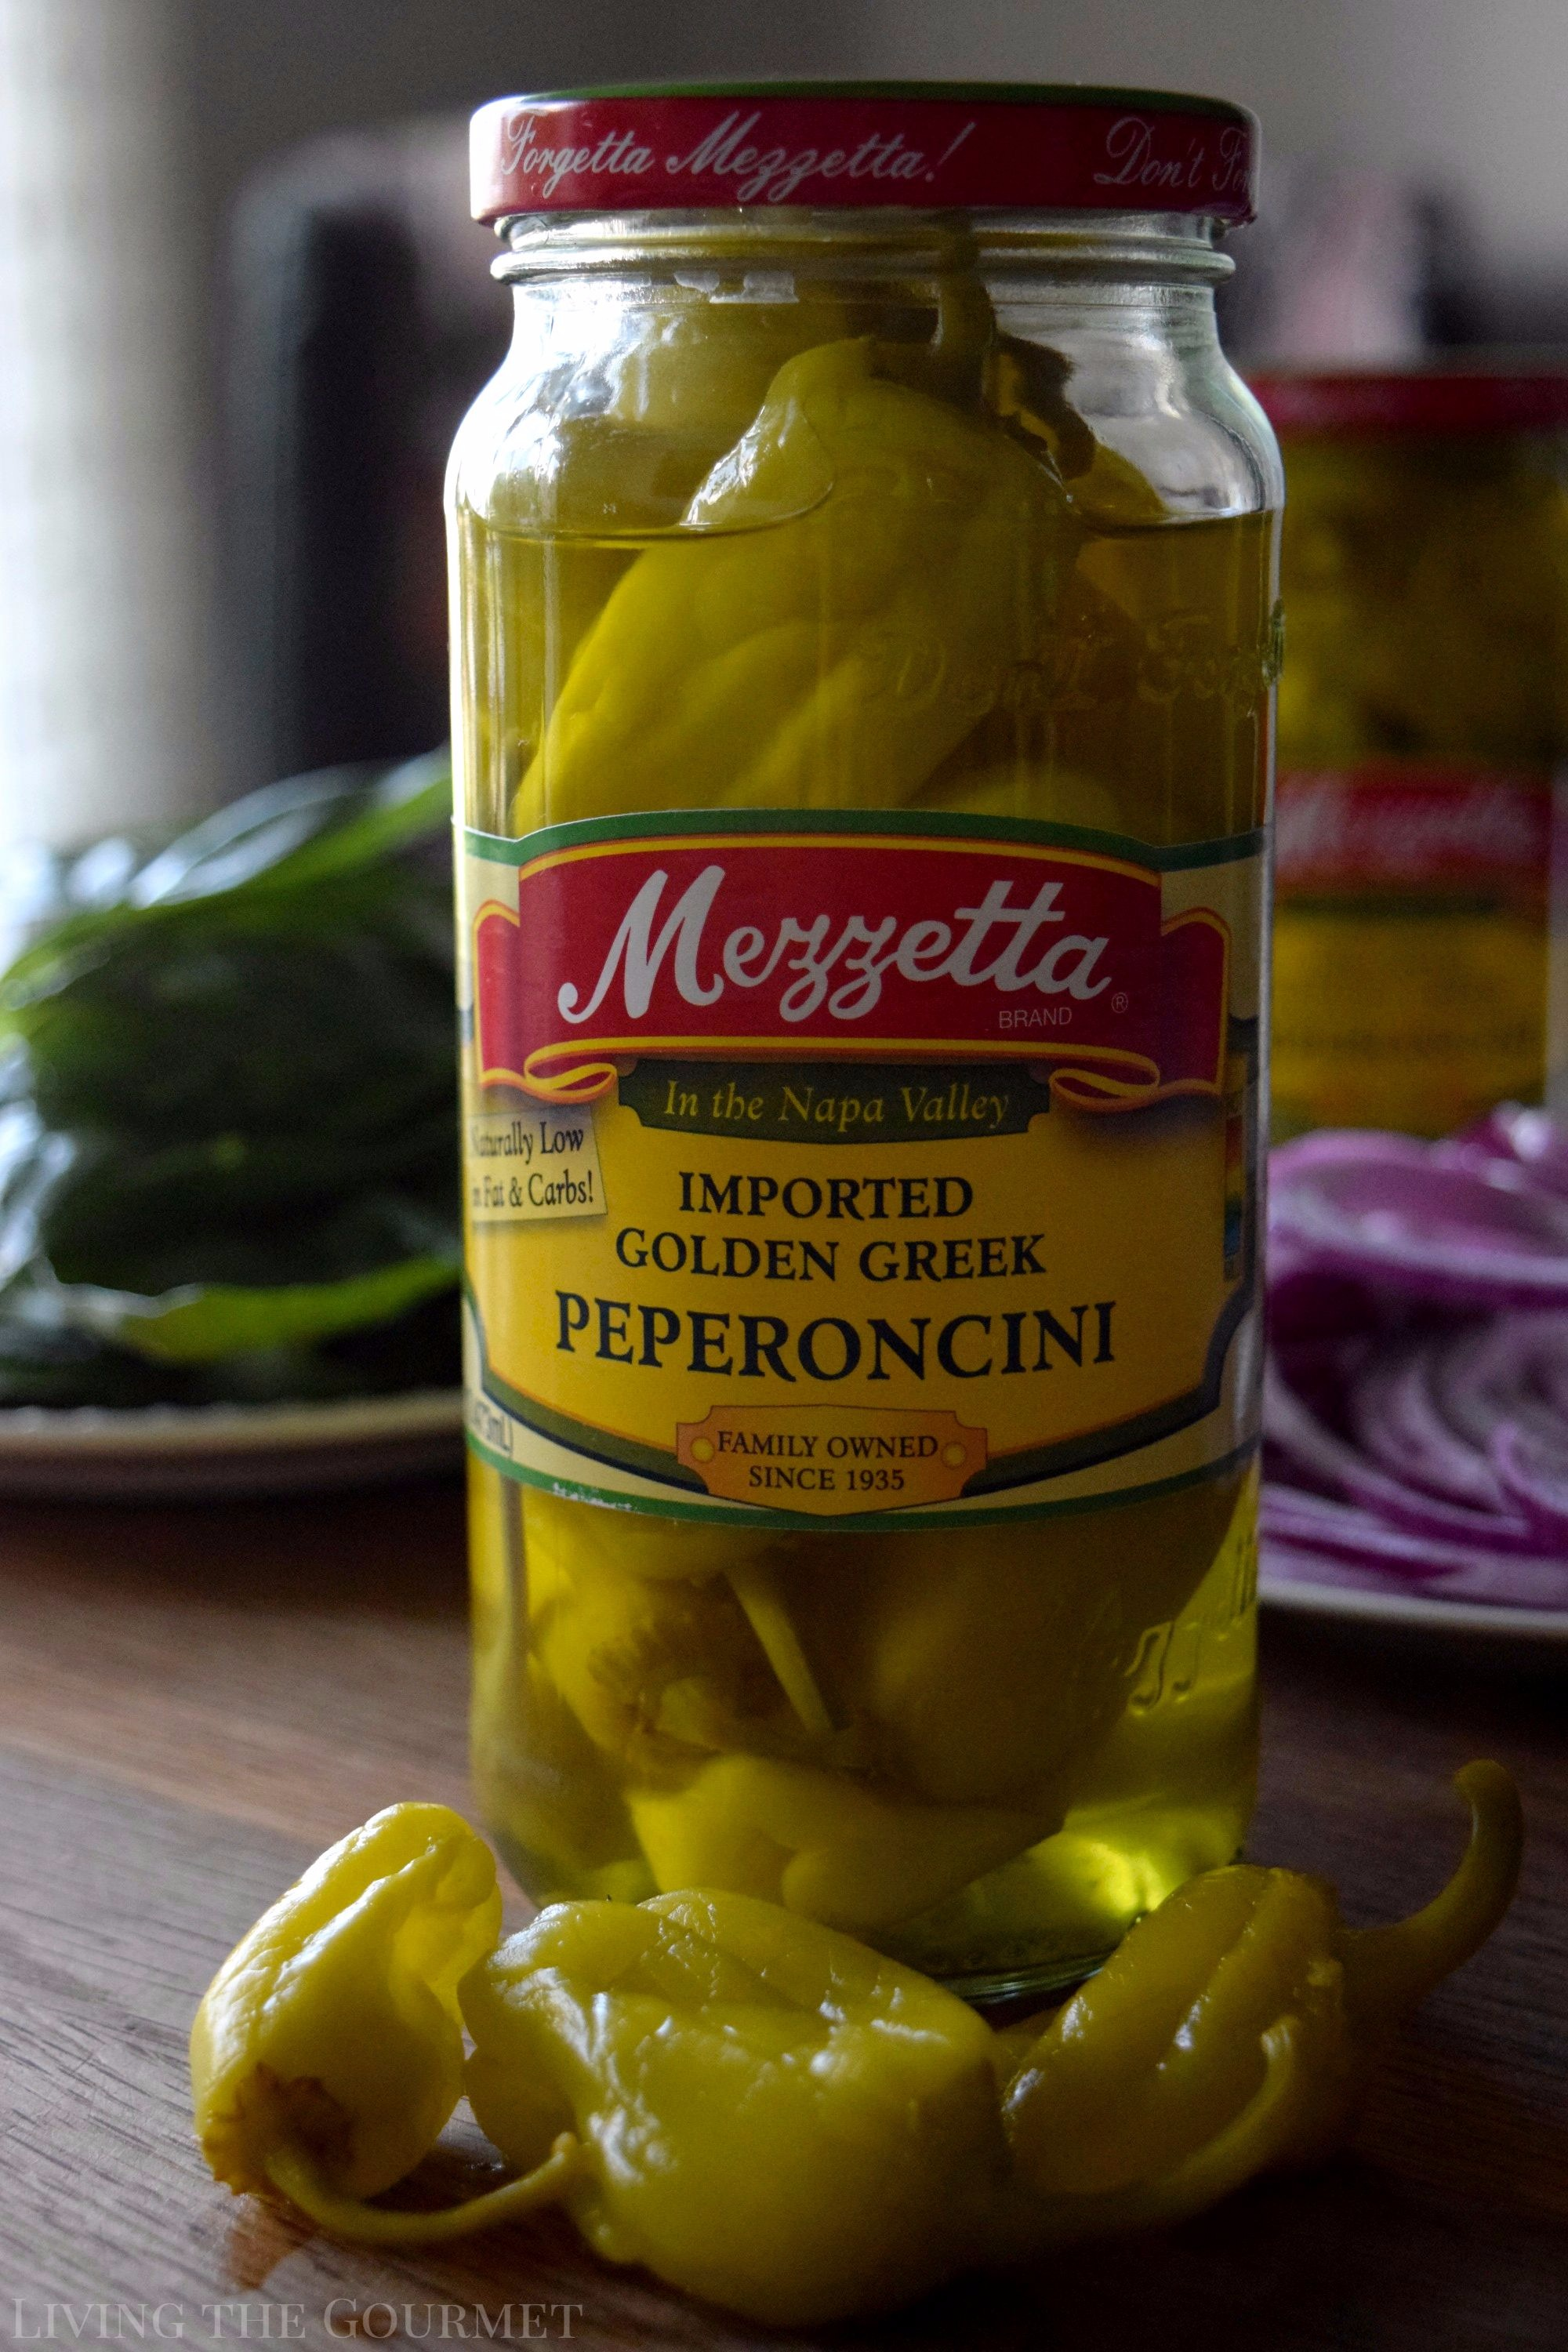 Living the Gourmet: Italian Peperoncini Sub Sandwiches are a delicious way to enjoy the mildly piquant, fruity flavor of Mezzetta Peperoncini | #DontForgettaMezzetta #Mezzetta